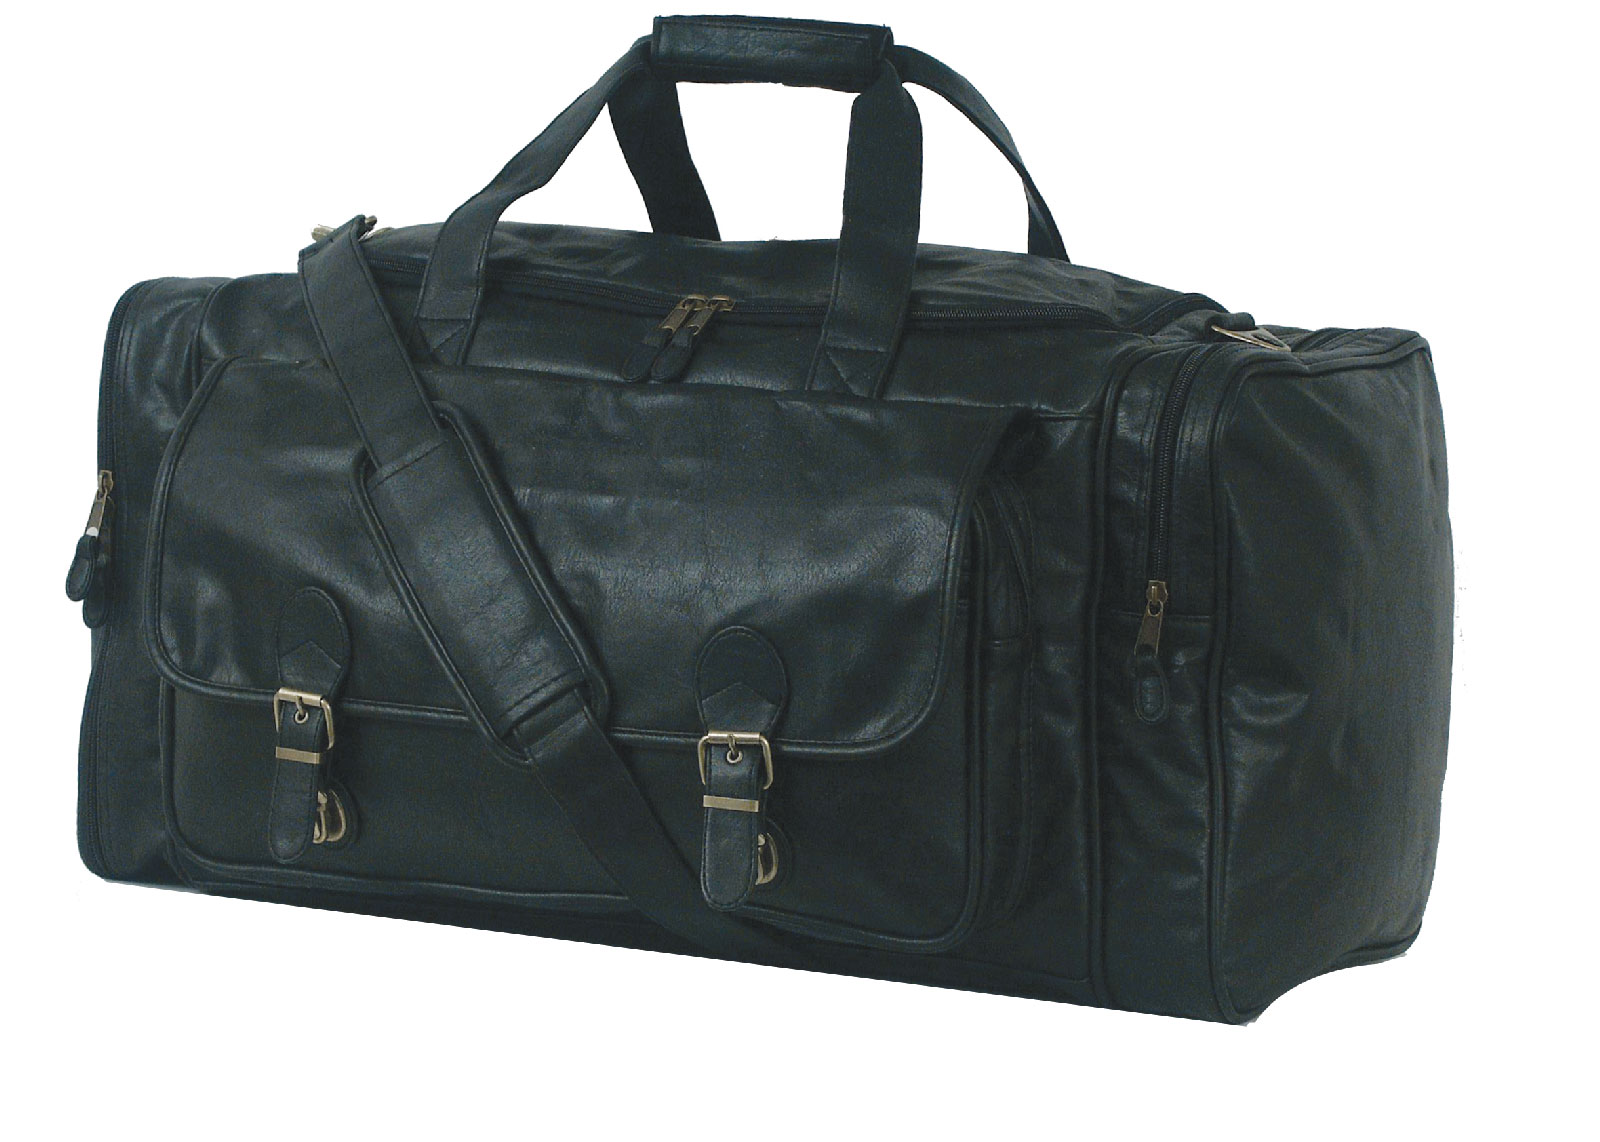 leatherette travel duffel bag large in duffle bags